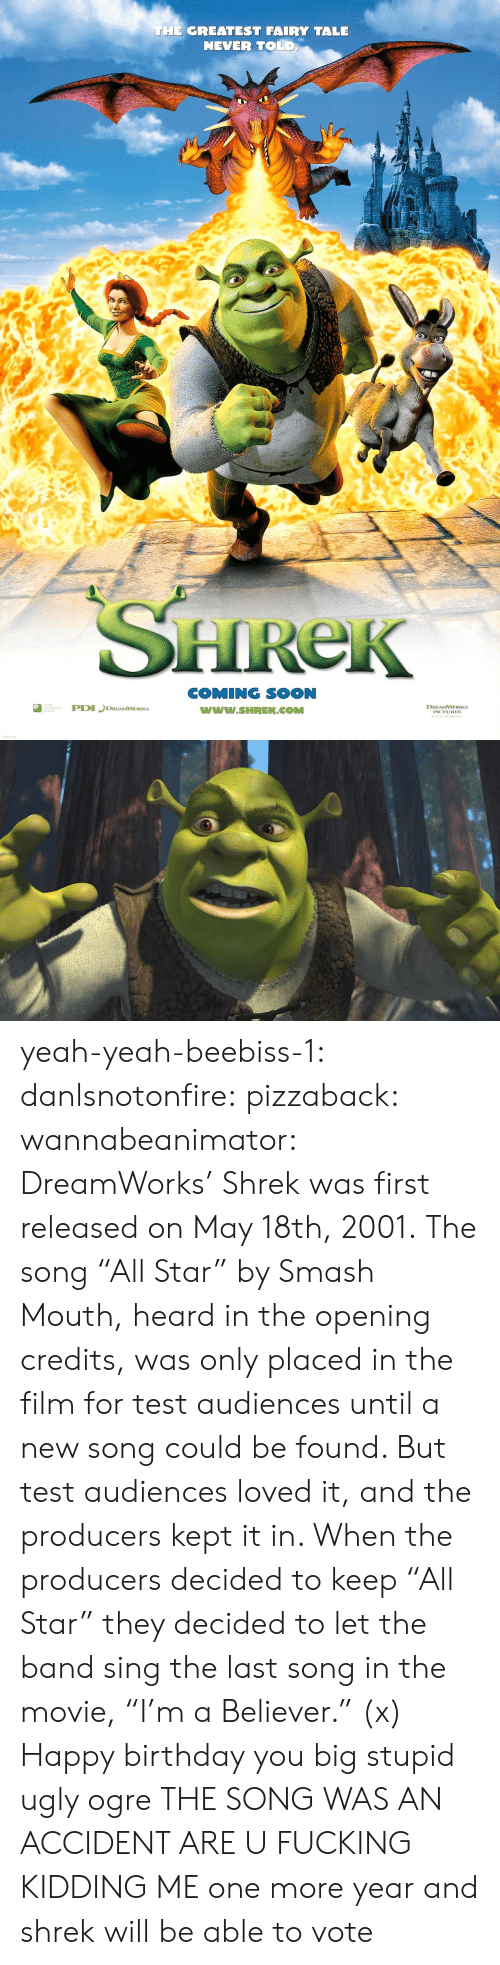 """Birthday, Fucking, and Shrek: THE GREATEST FAIRY TALE  NEVER TOLD  HReK  COMING SOON  www.SHREK.COMM  ted  DREAMWORKS yeah-yeah-beebiss-1: danlsnotonfire:  pizzaback:   wannabeanimator:   DreamWorks' Shrek was first released on May 18th, 2001. The song """"All Star"""" by Smash Mouth, heard in the opening credits, was only placed in the film for test audiences until a new song could be found. But test audiences loved it, and the producers kept it in. When the producers decided to keep """"All Star"""" they decided to let the band sing the last song in the movie, """"I'm a Believer."""" (x)   Happy birthday you big stupid ugly ogre   THE SONG WAS AN ACCIDENT ARE U FUCKING KIDDING ME   one more year and shrek will be able to vote"""